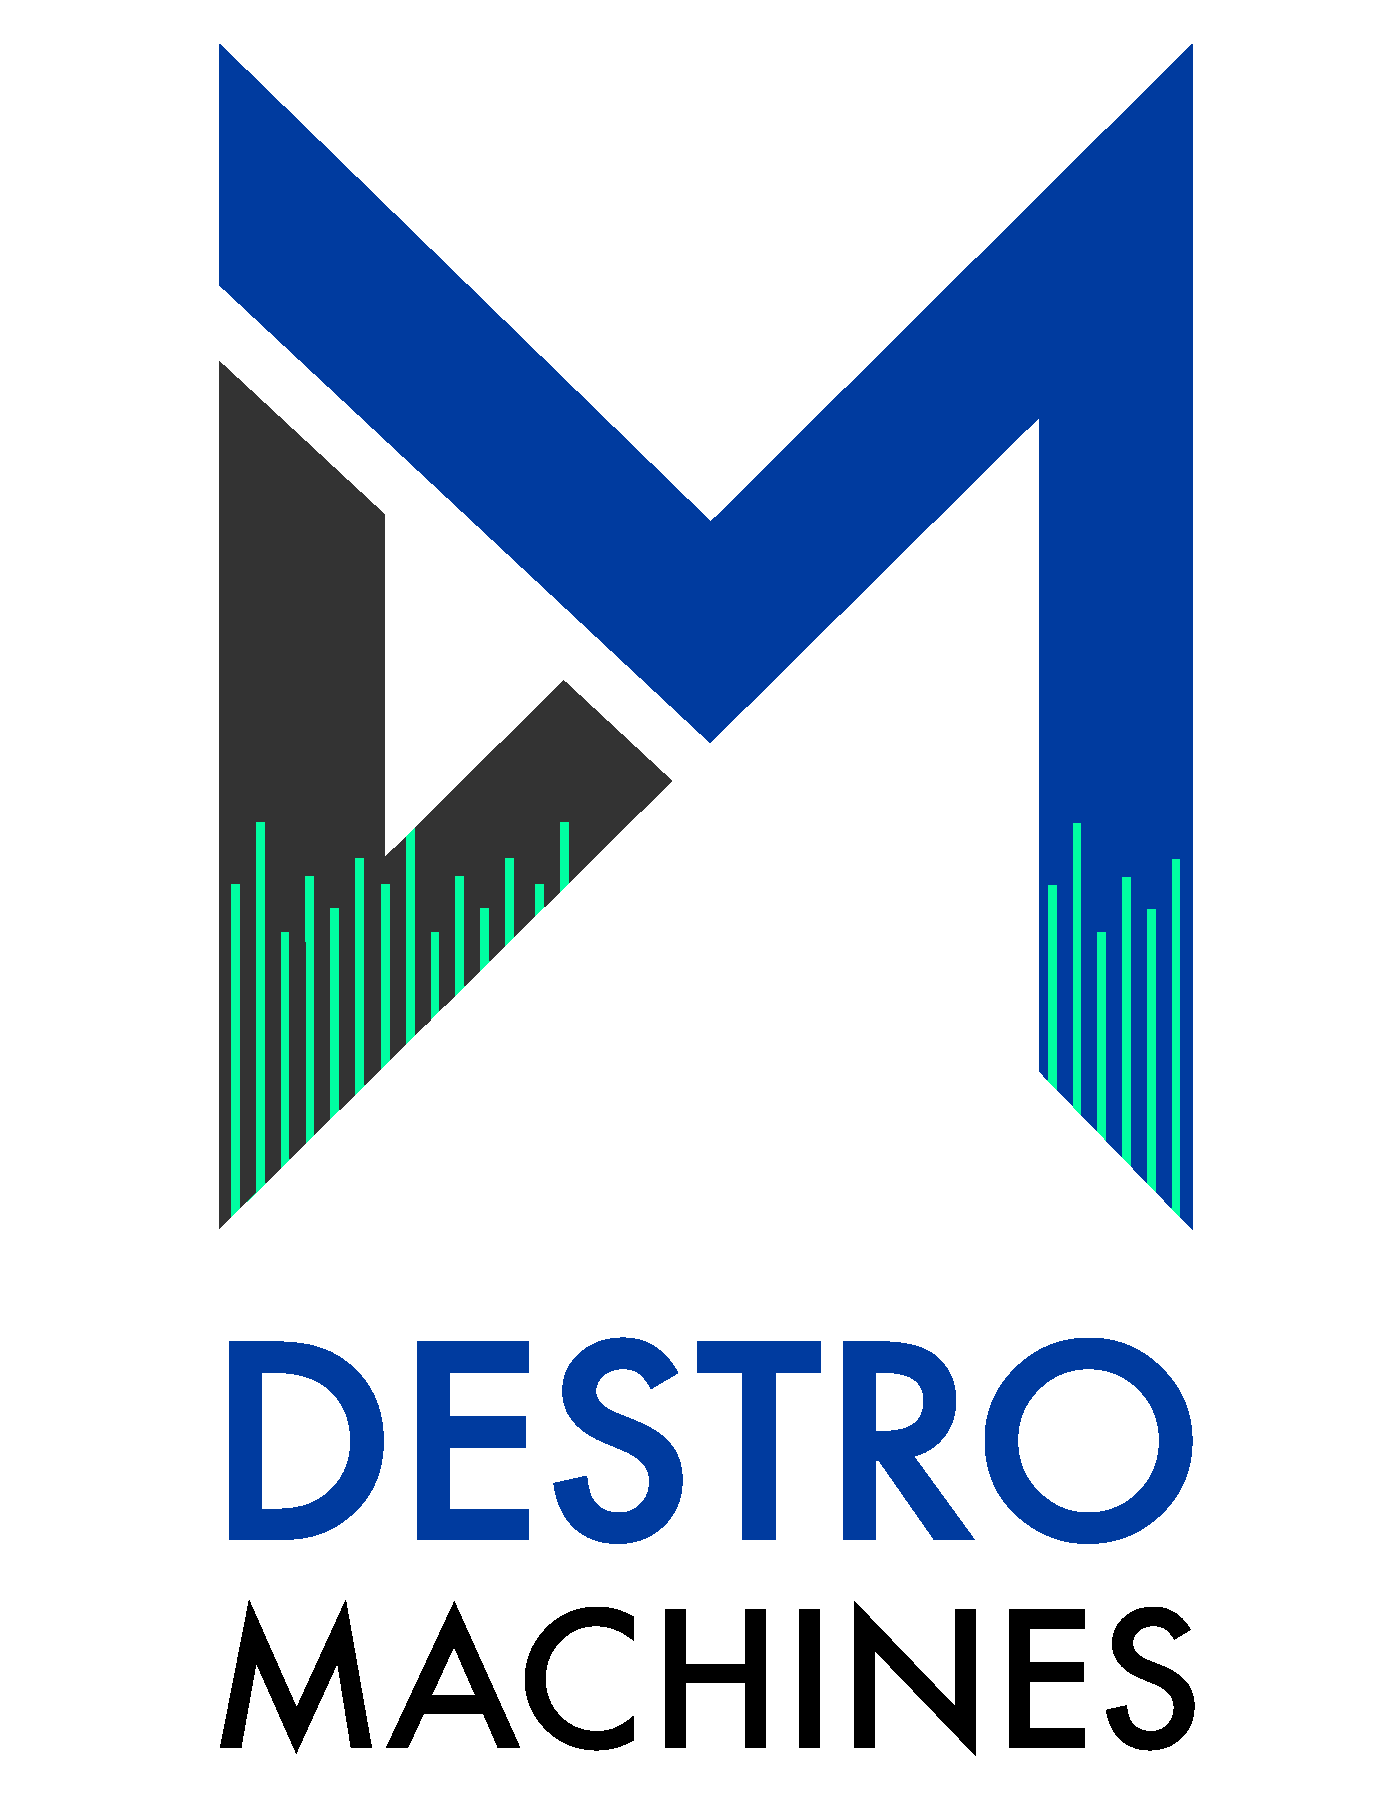 Destro Machines logo